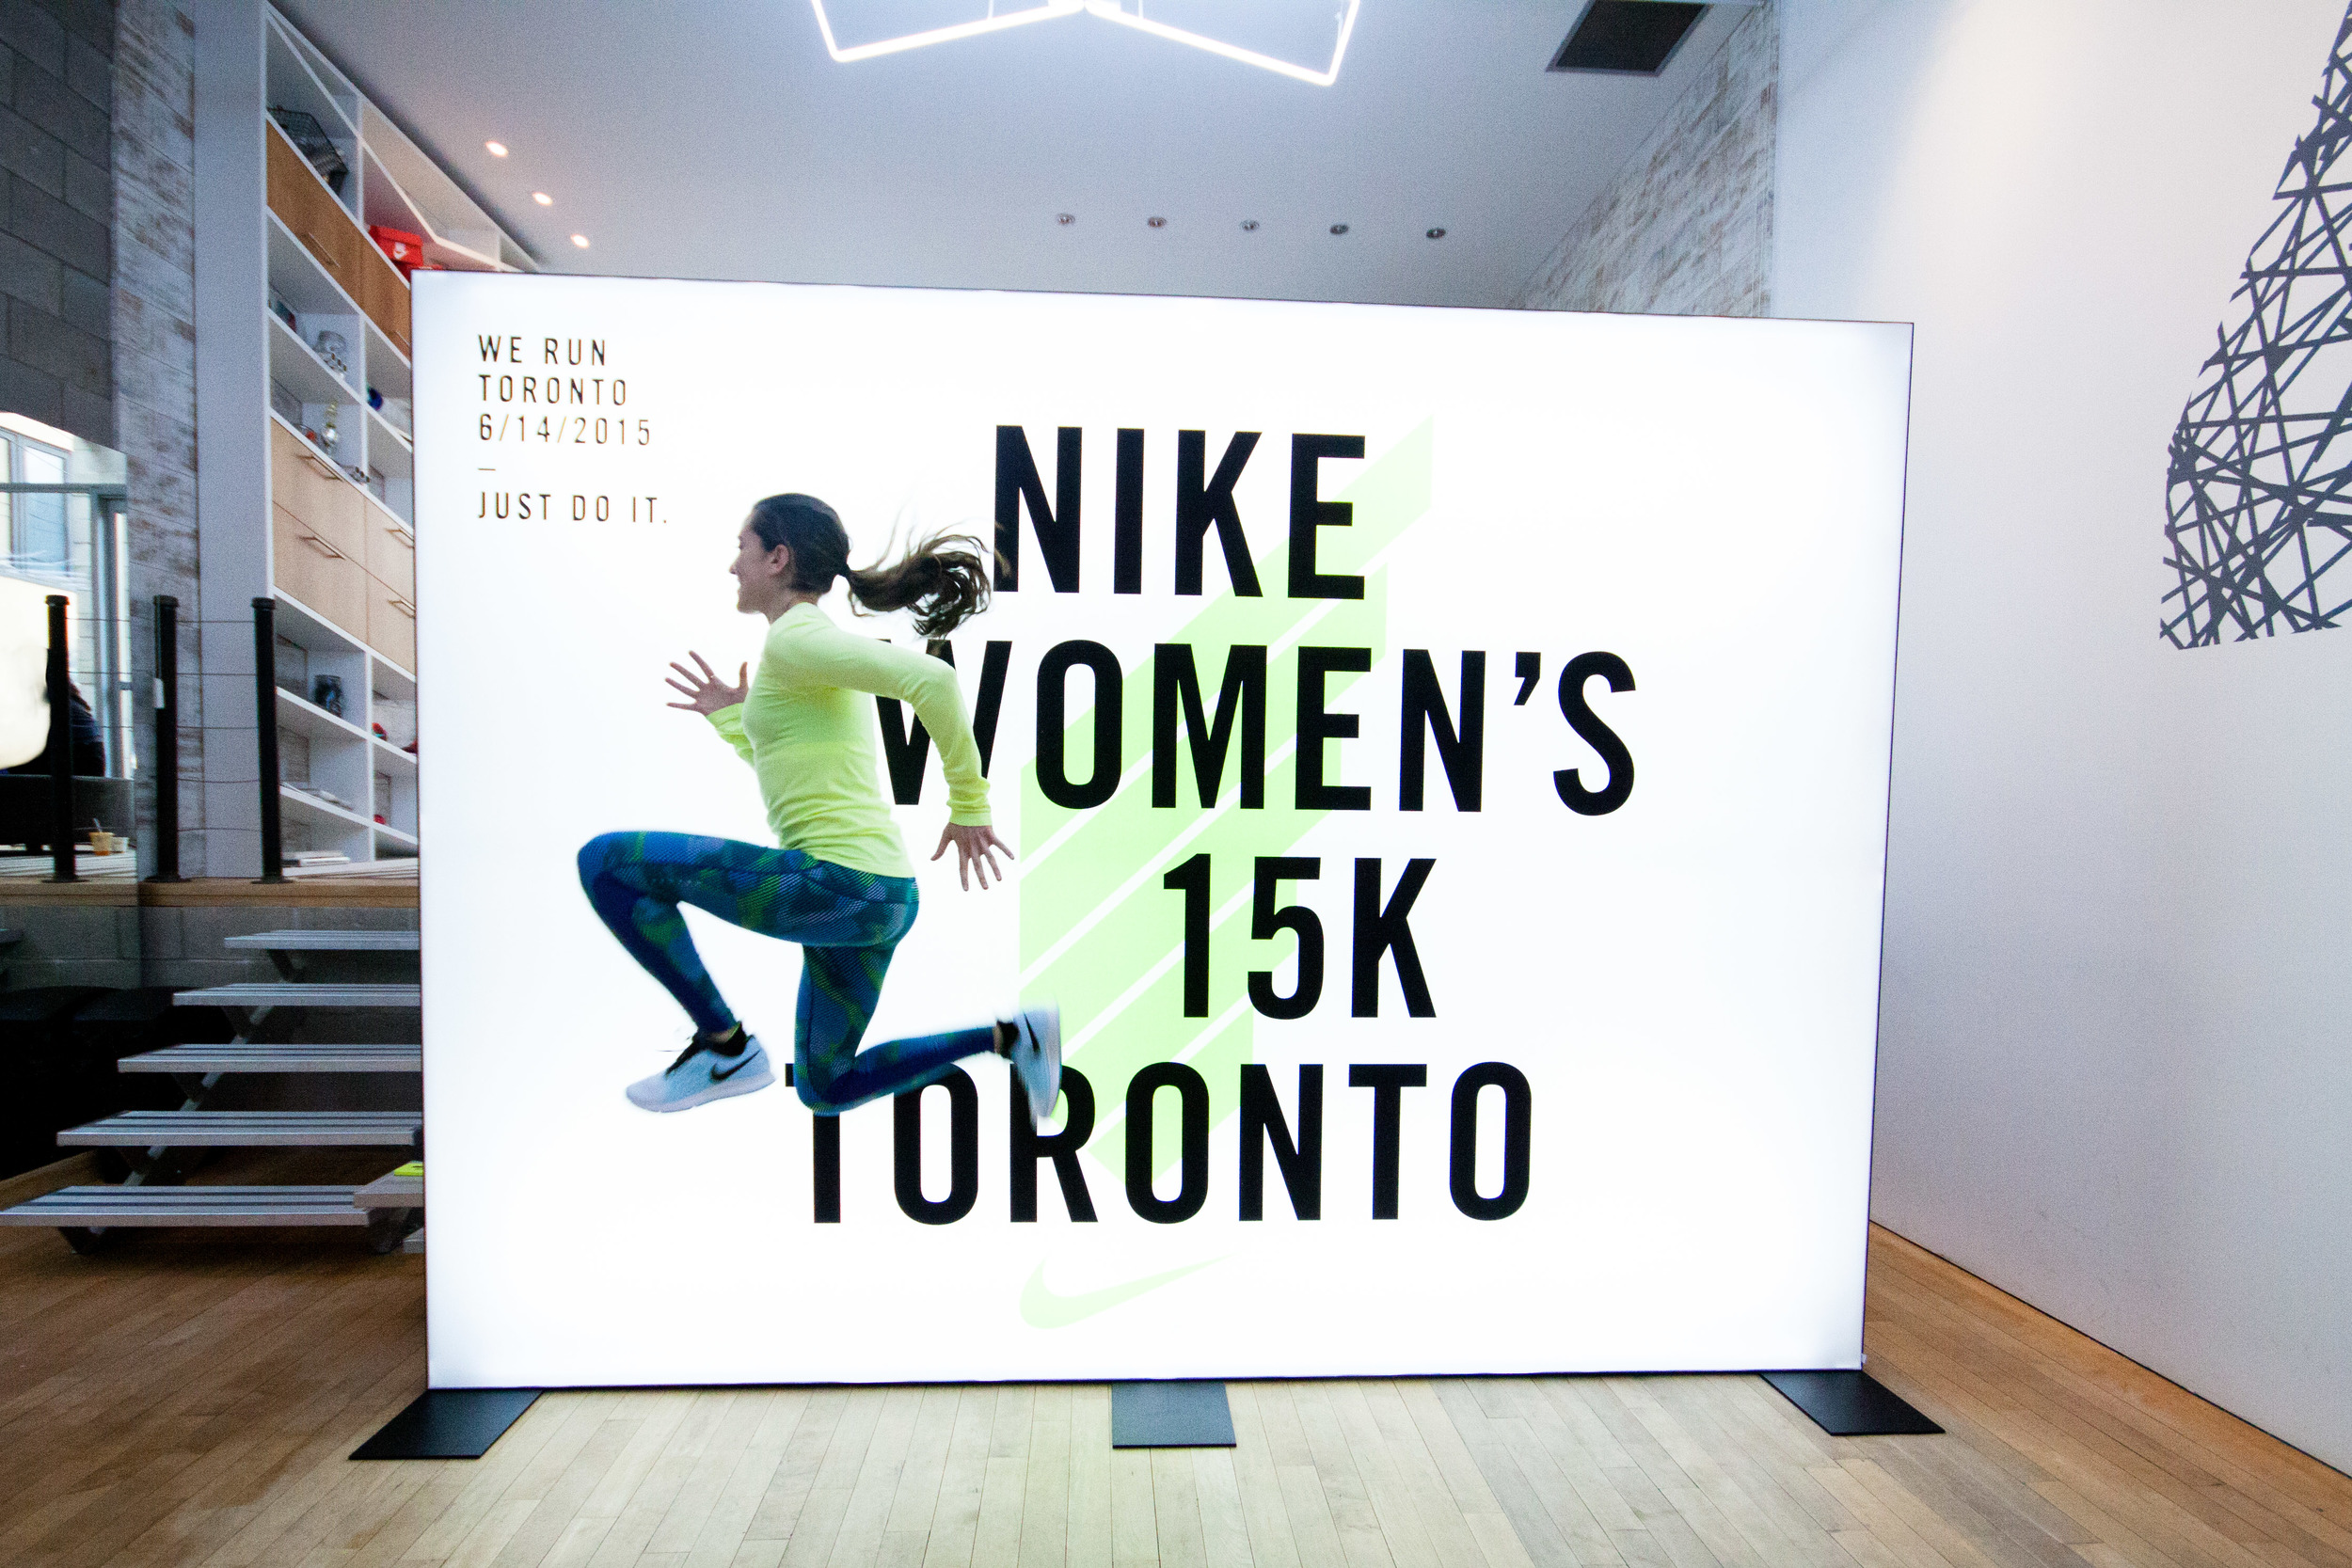 Canadian Olympian Sheila Reid gets into the spirit for the upcoming Nike Women's 15K on Toronto Island.